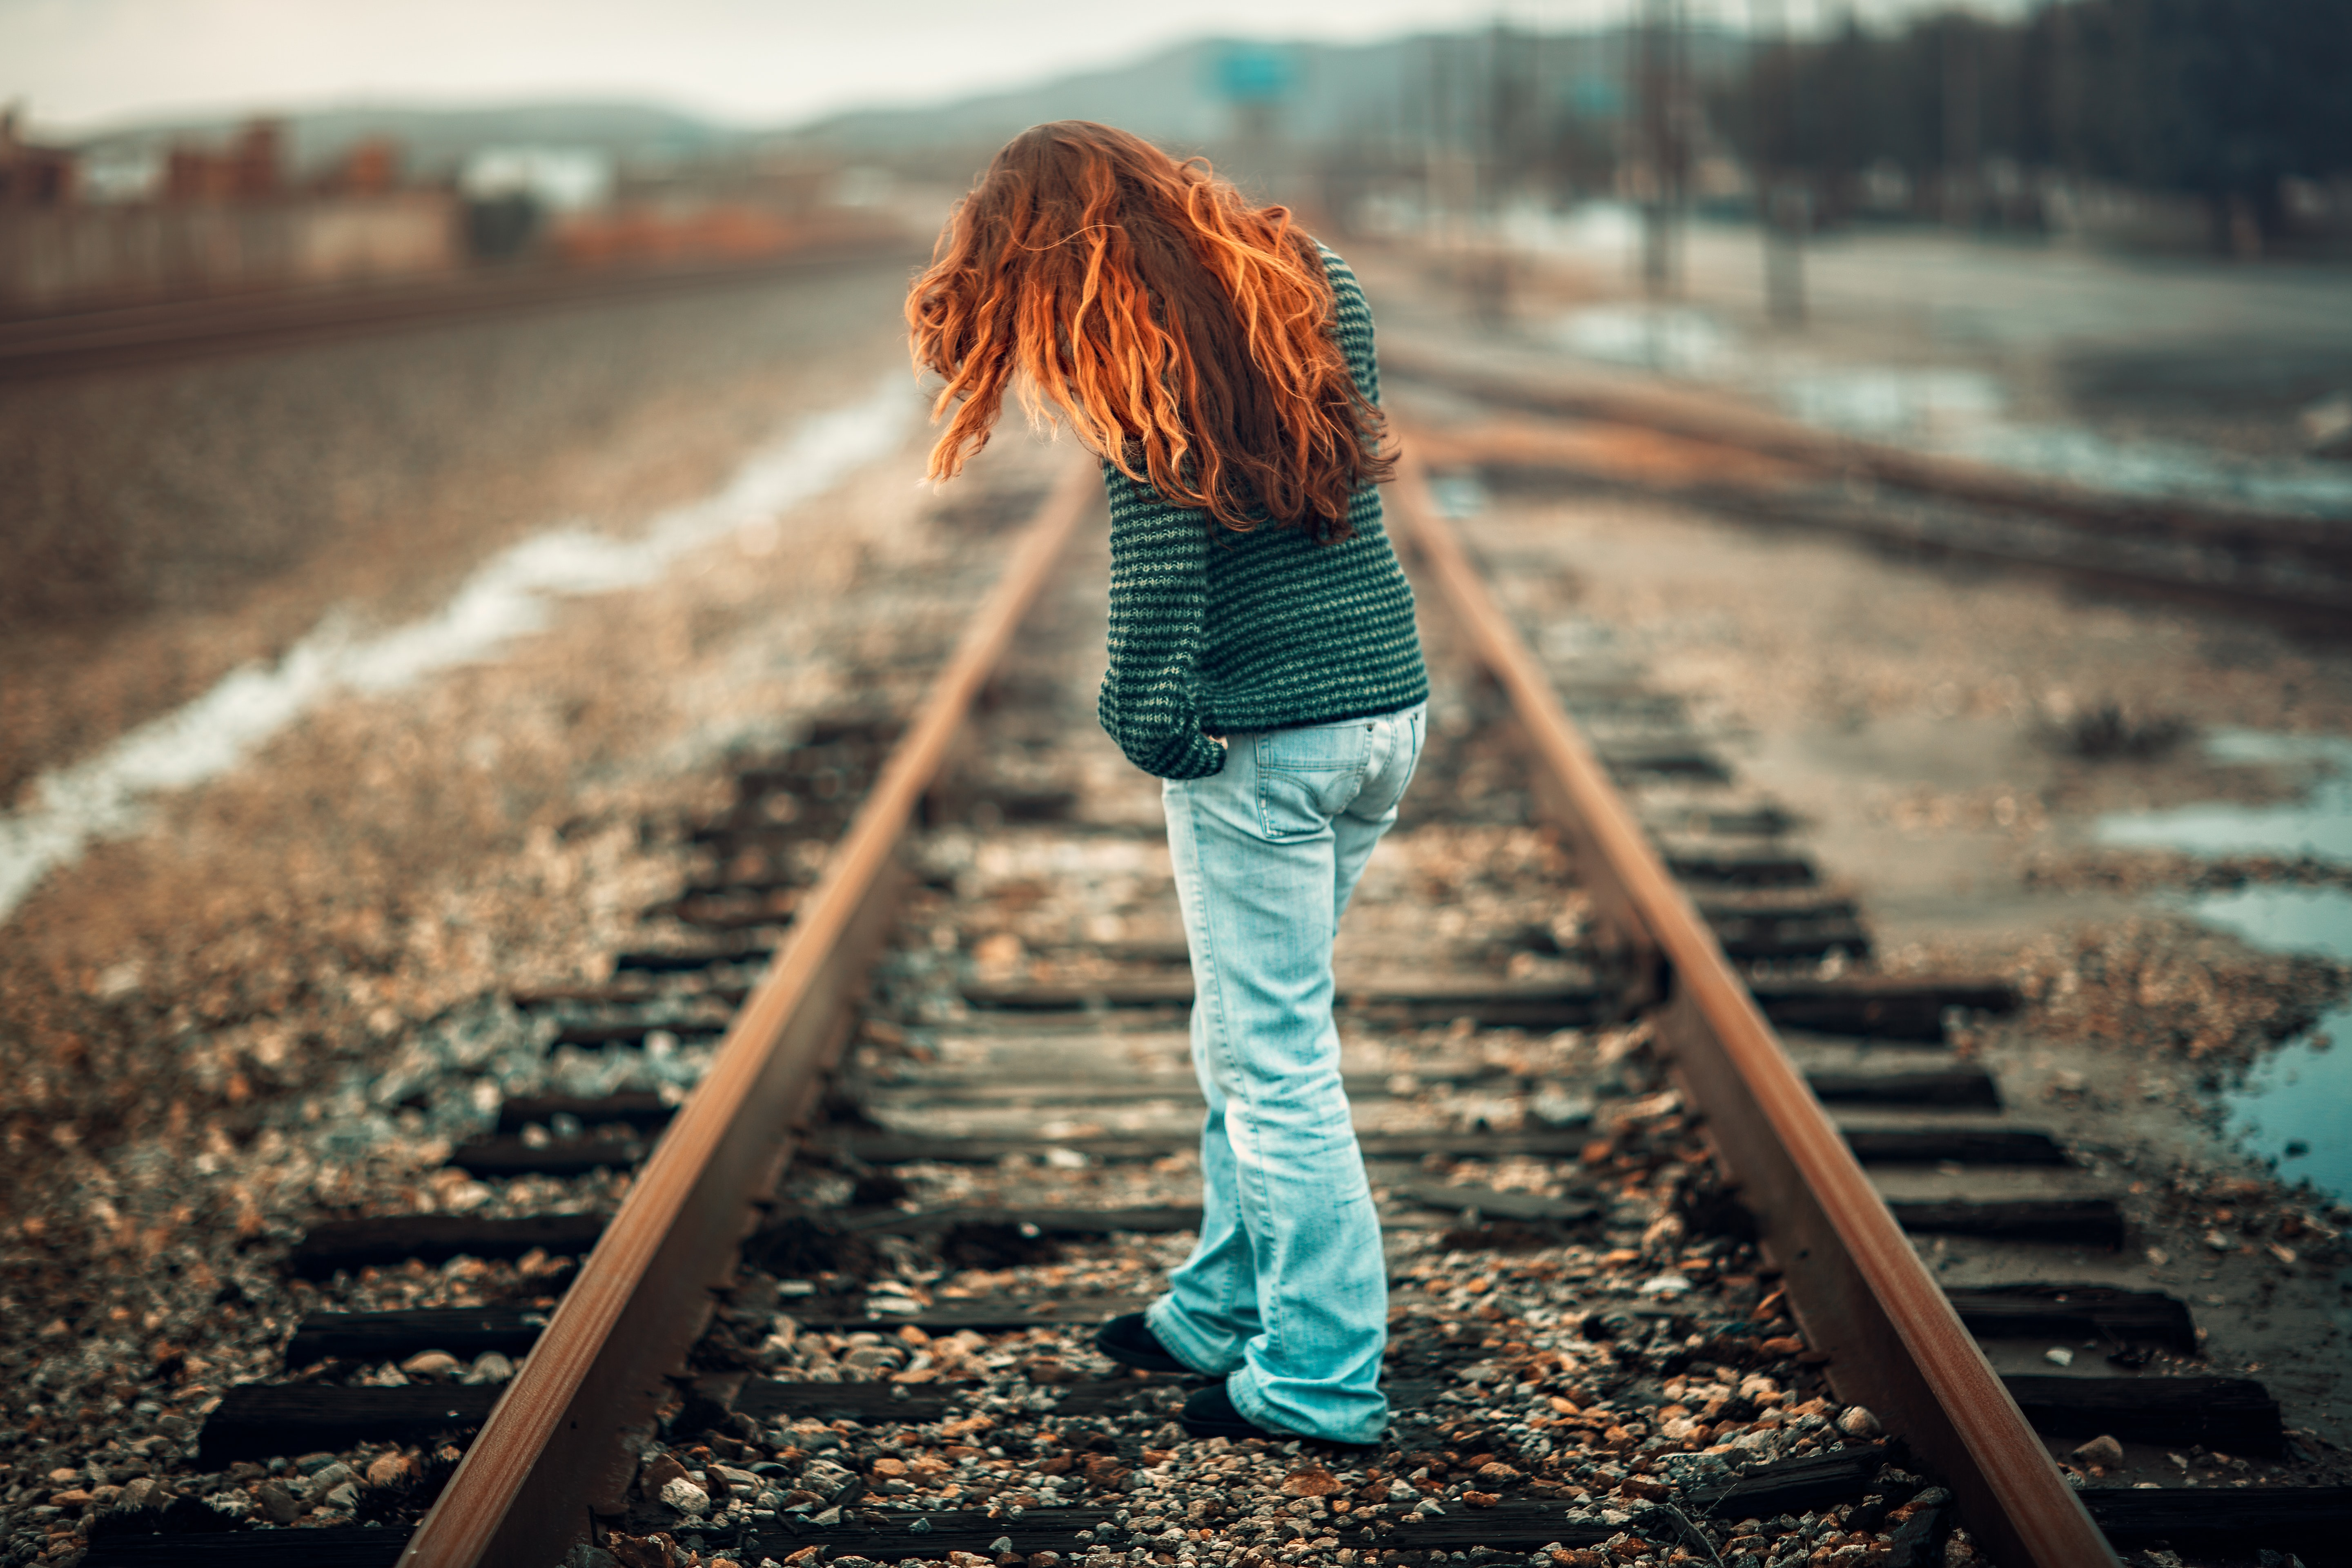 A woman standing on railway tracks on a rainy day